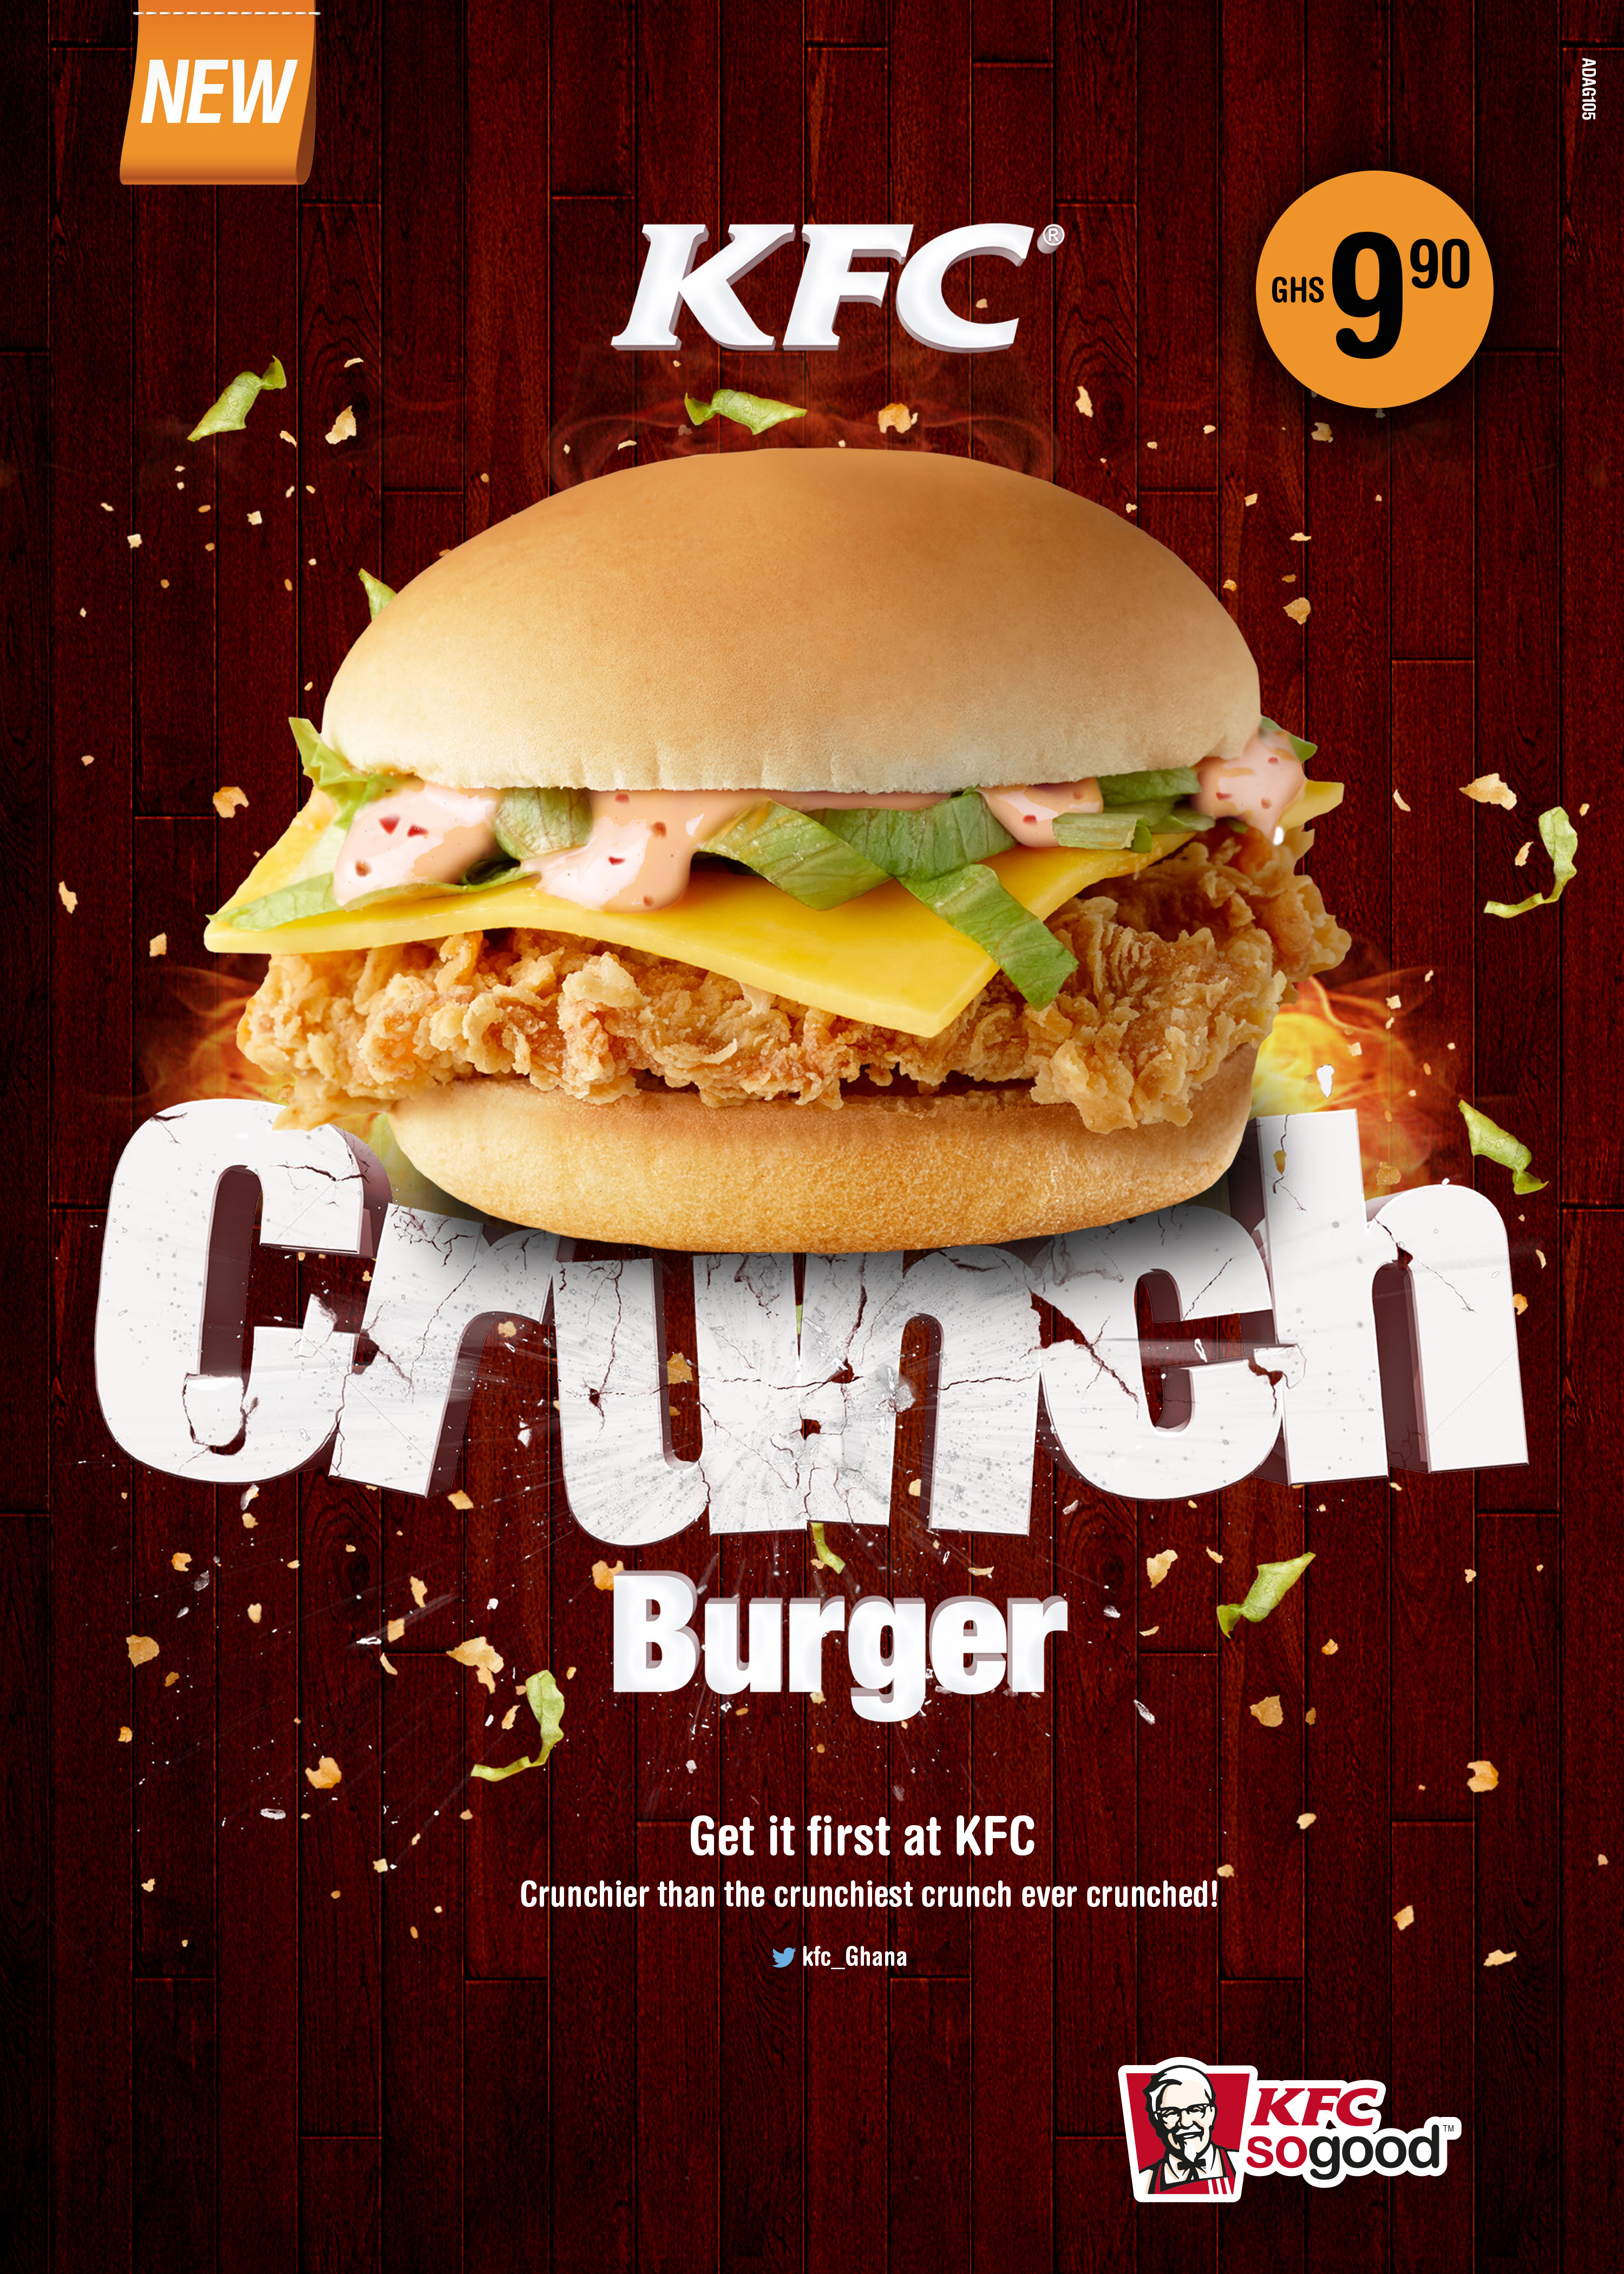 Kfc Ghana Has A New Product Details Inside